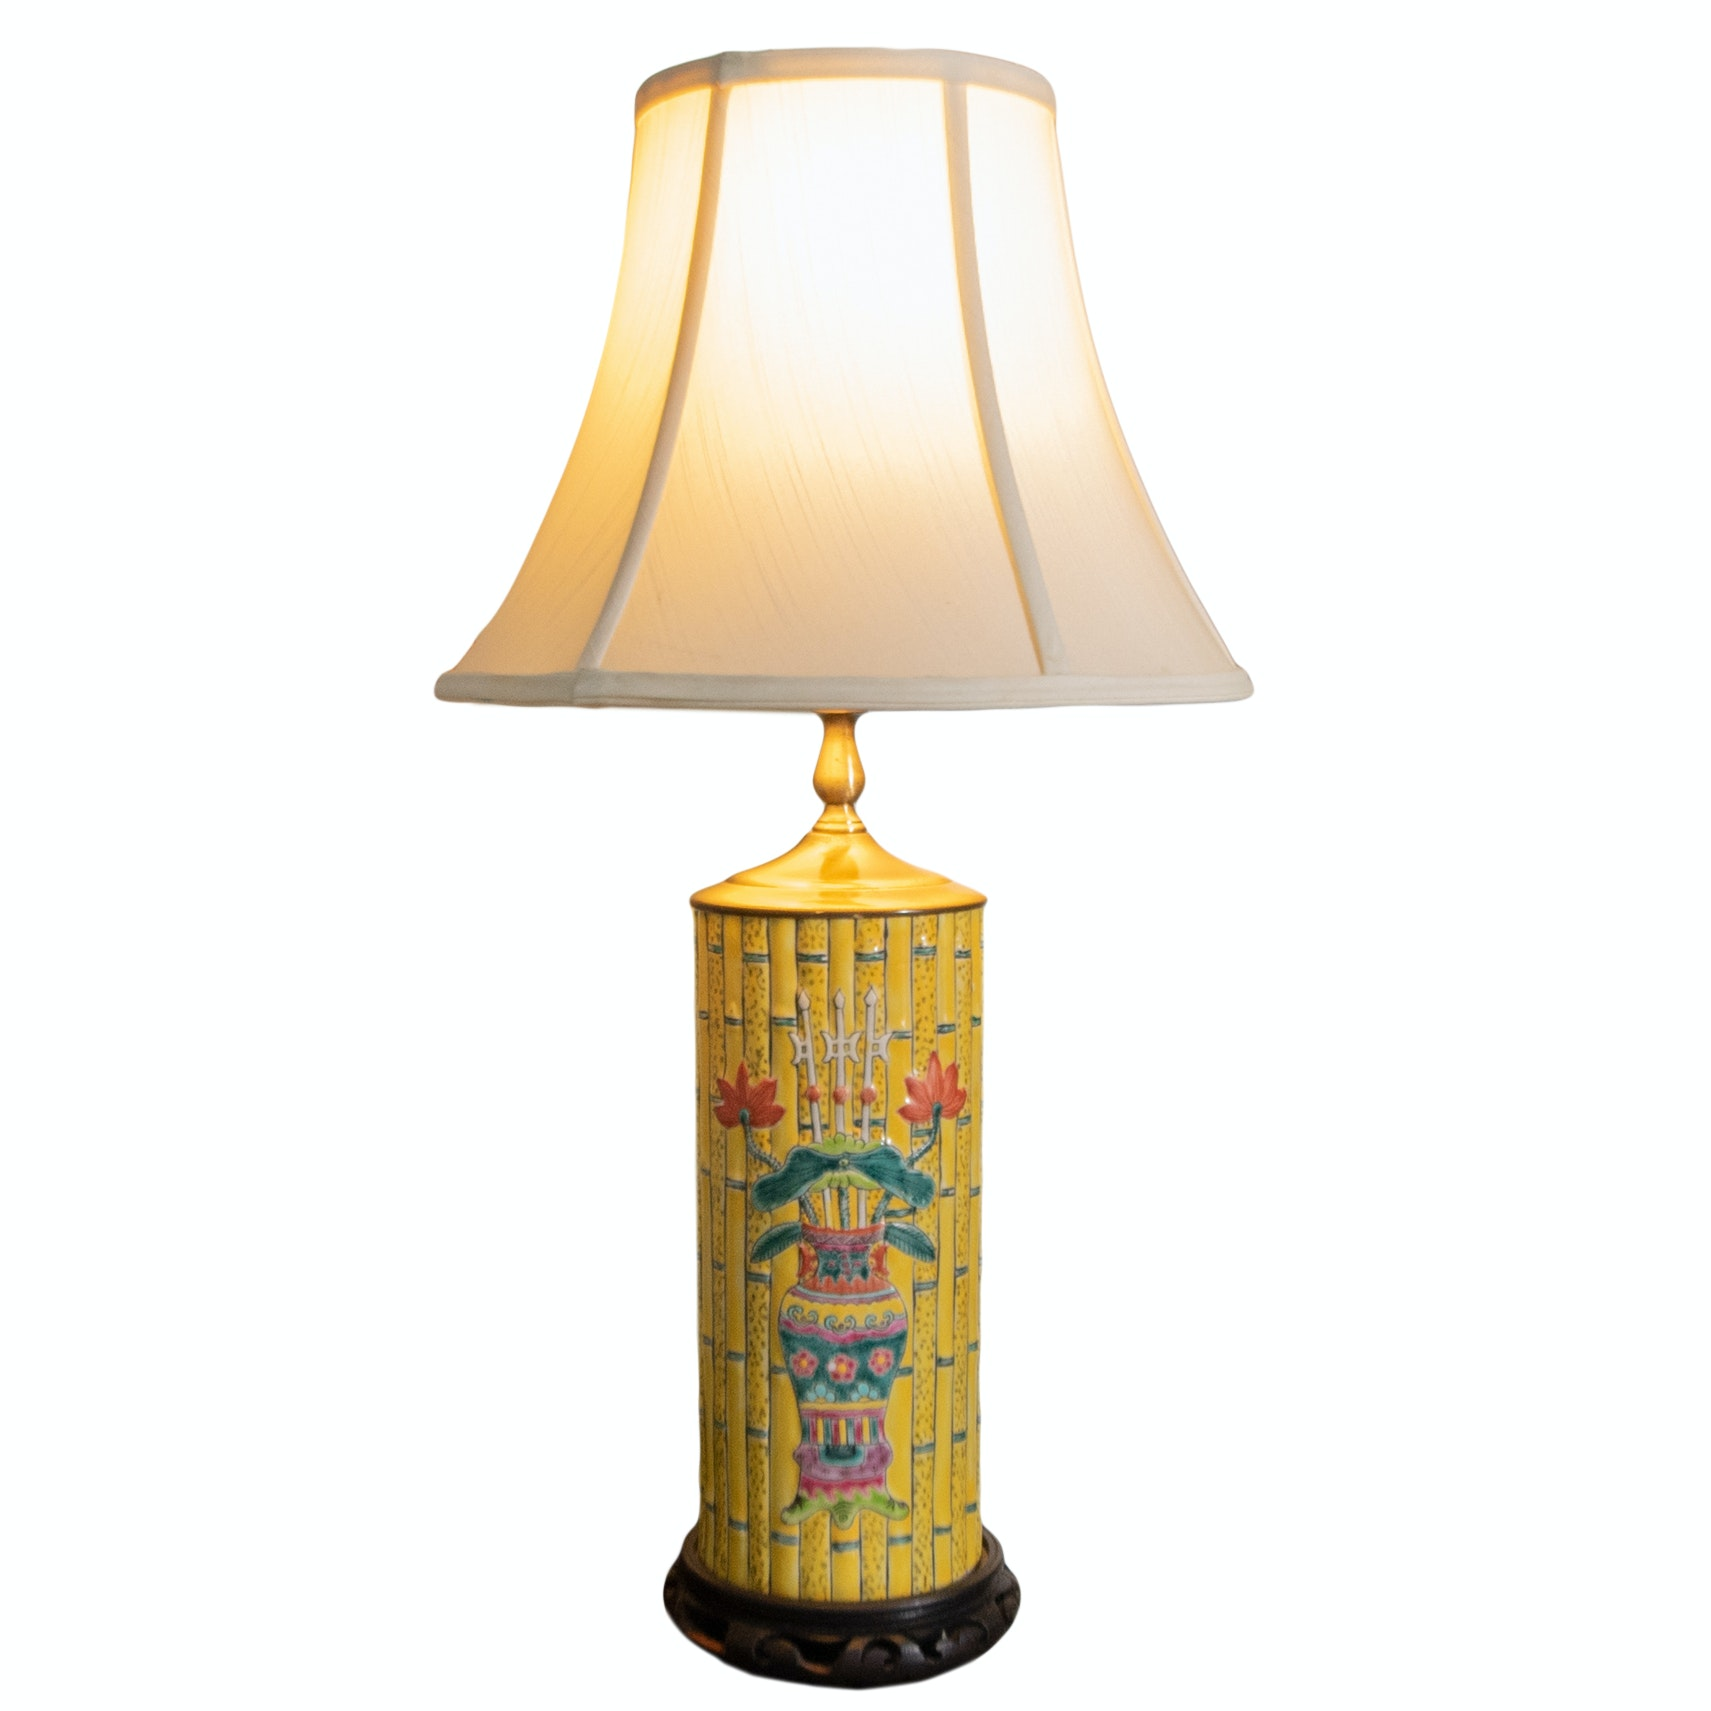 Vintage Chinese Ceramic Table Lamp